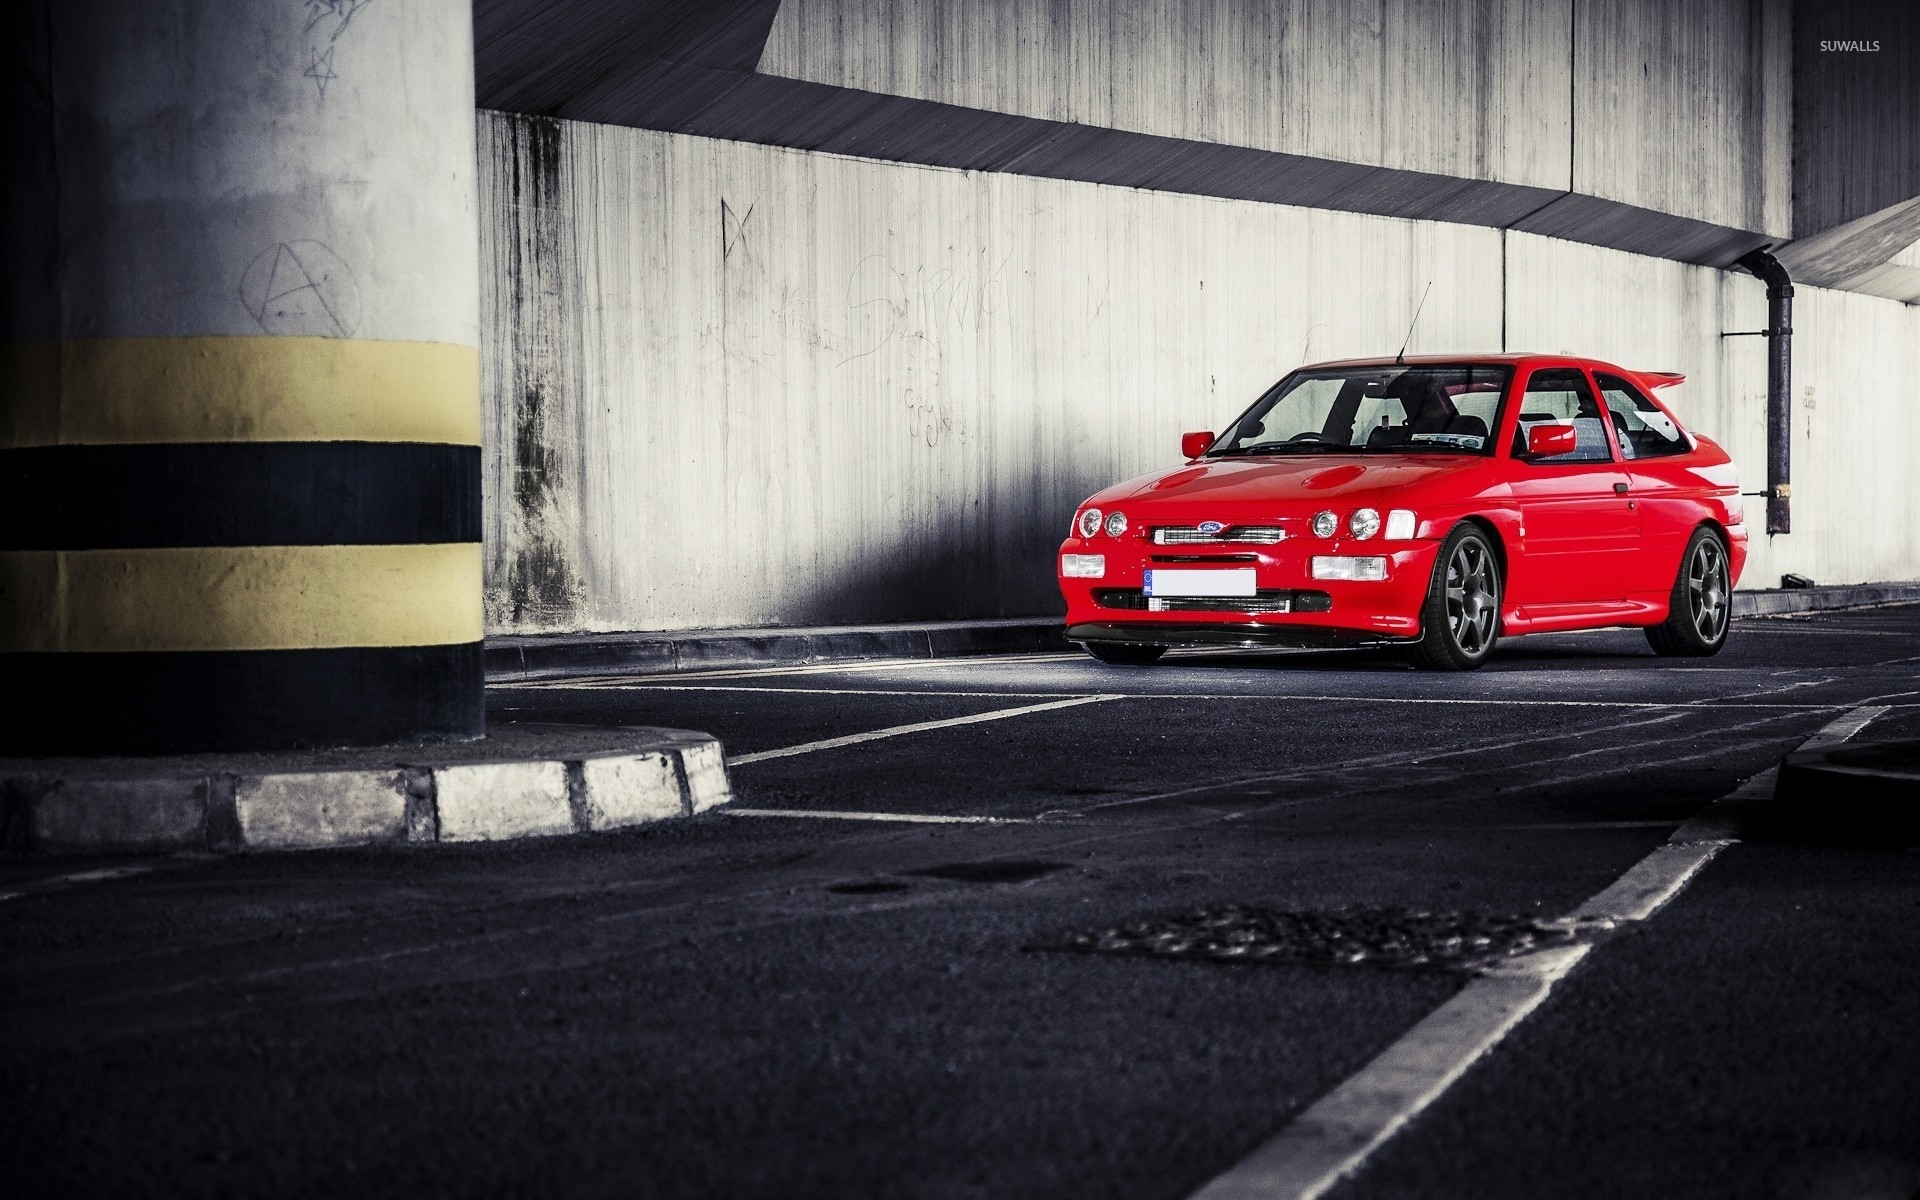 1920x1200 - Ford Escort Wallpapers 19